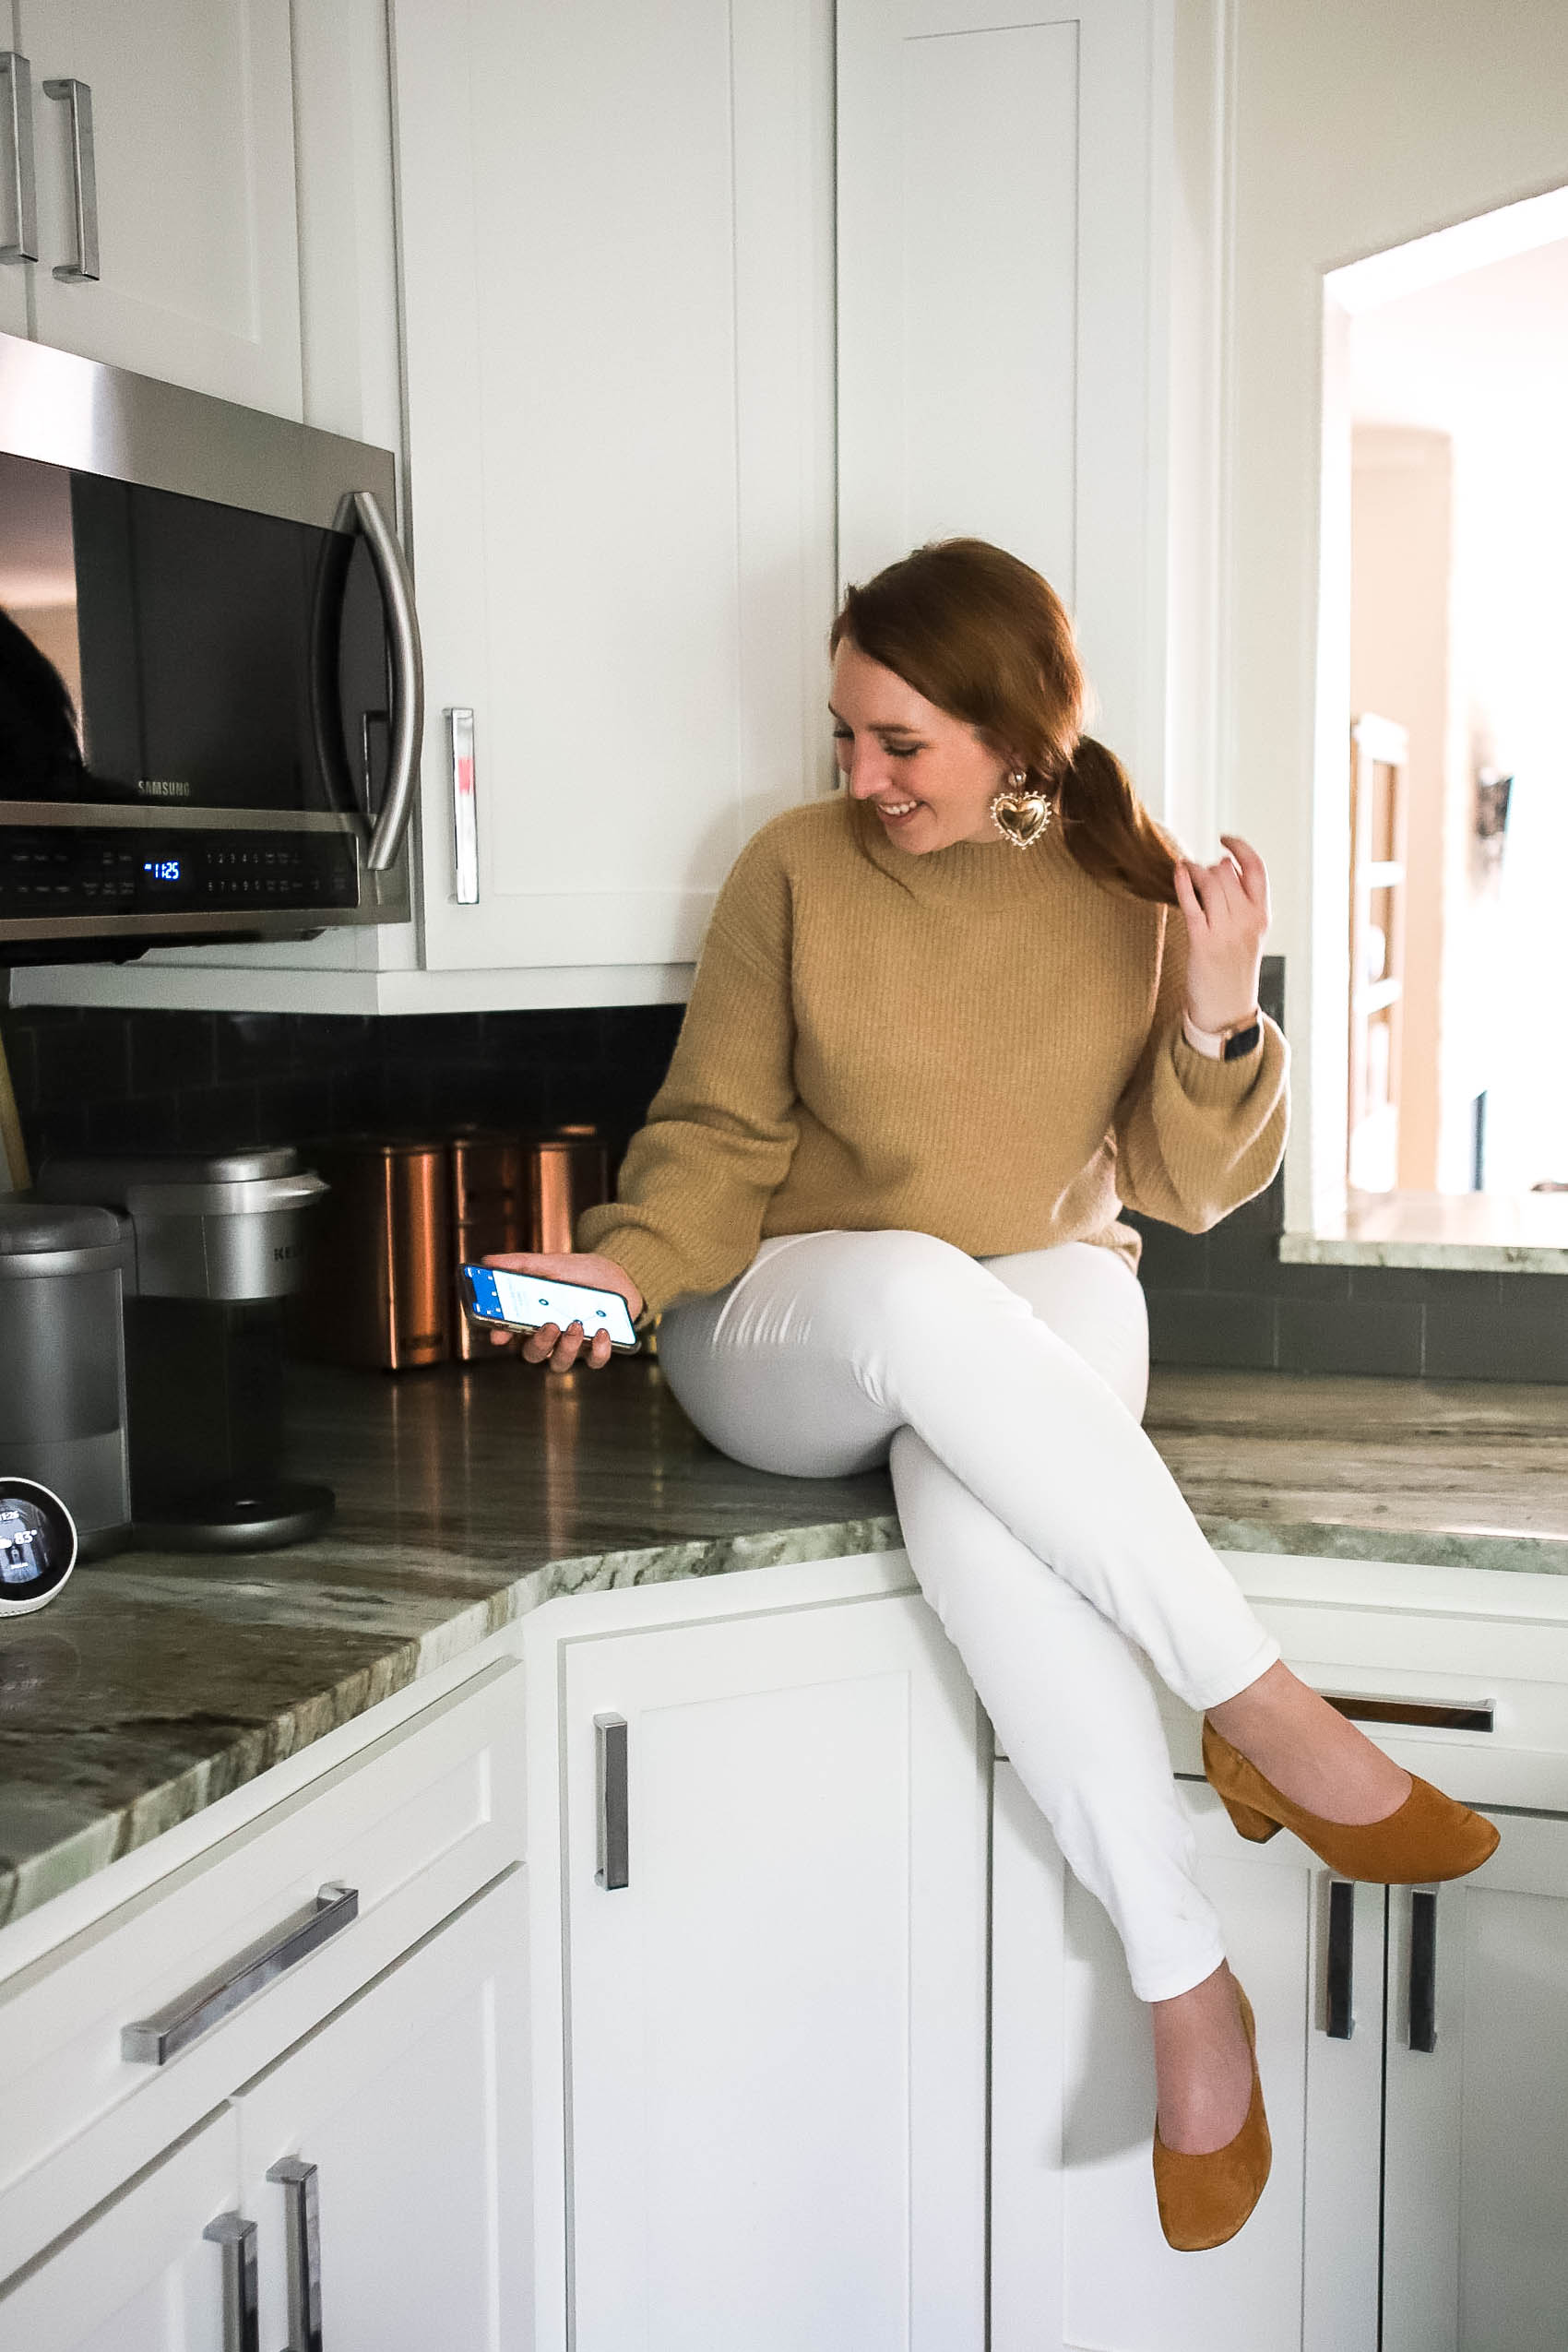 Blogger shares how to use smart home devices to make your house more secure | How to use smart home devices throughout your day | What smart home devices to buy on Amazon Prime Day